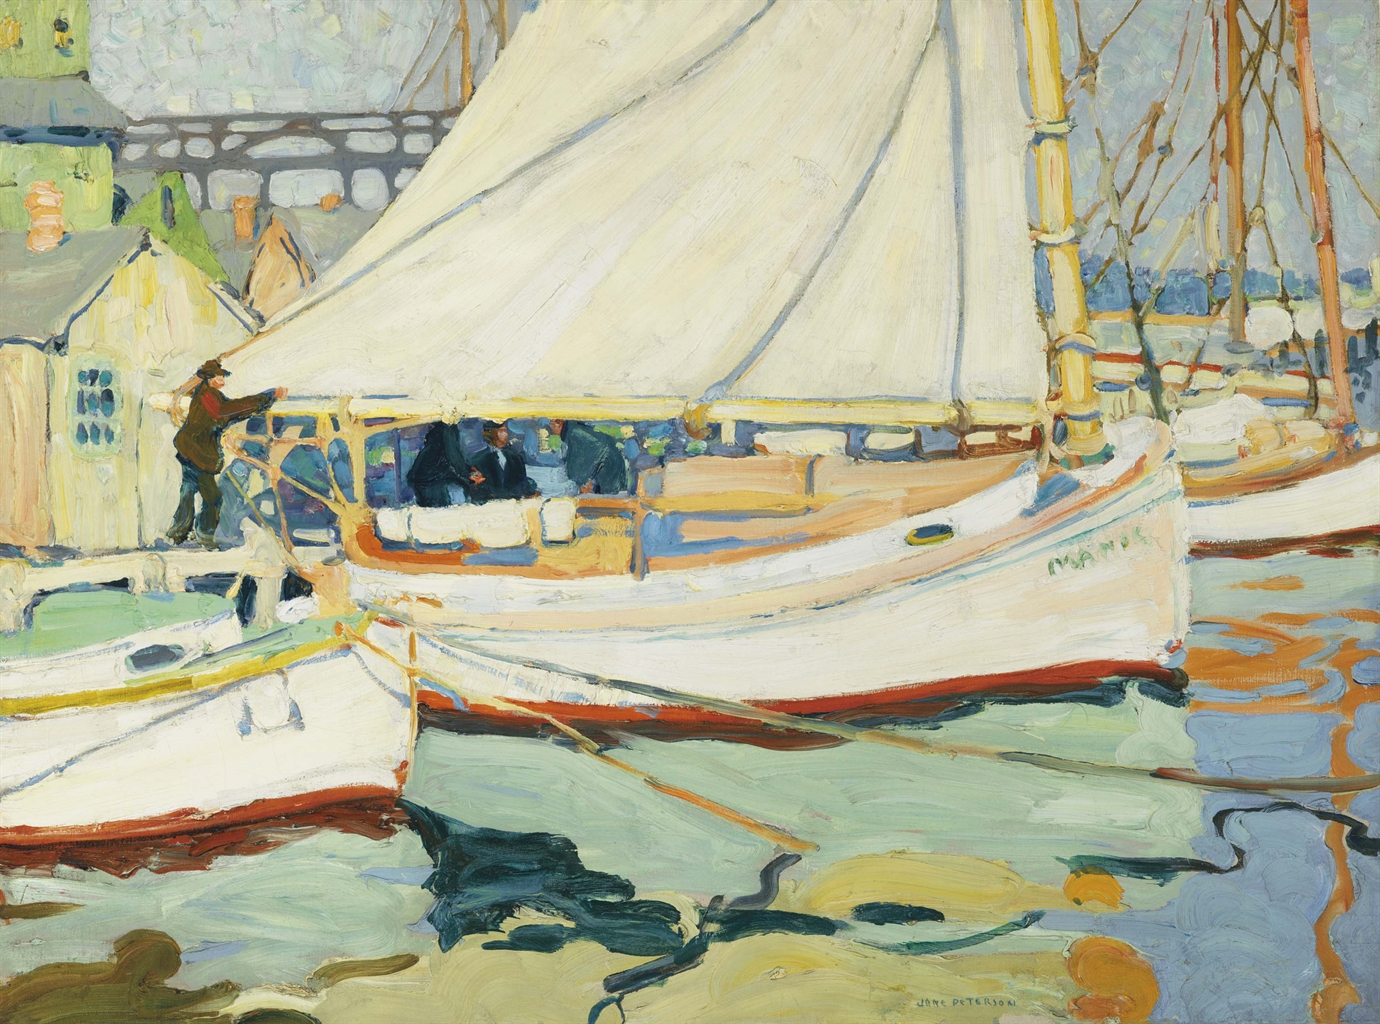 Jane Peterson (1876-1965), Boats. Oil on canvas, 30 x 40 in (76.2 x 101.6 cm). This lot was offered in American Art on 23 May 2017 at Christie's in New York and sold for $118,750